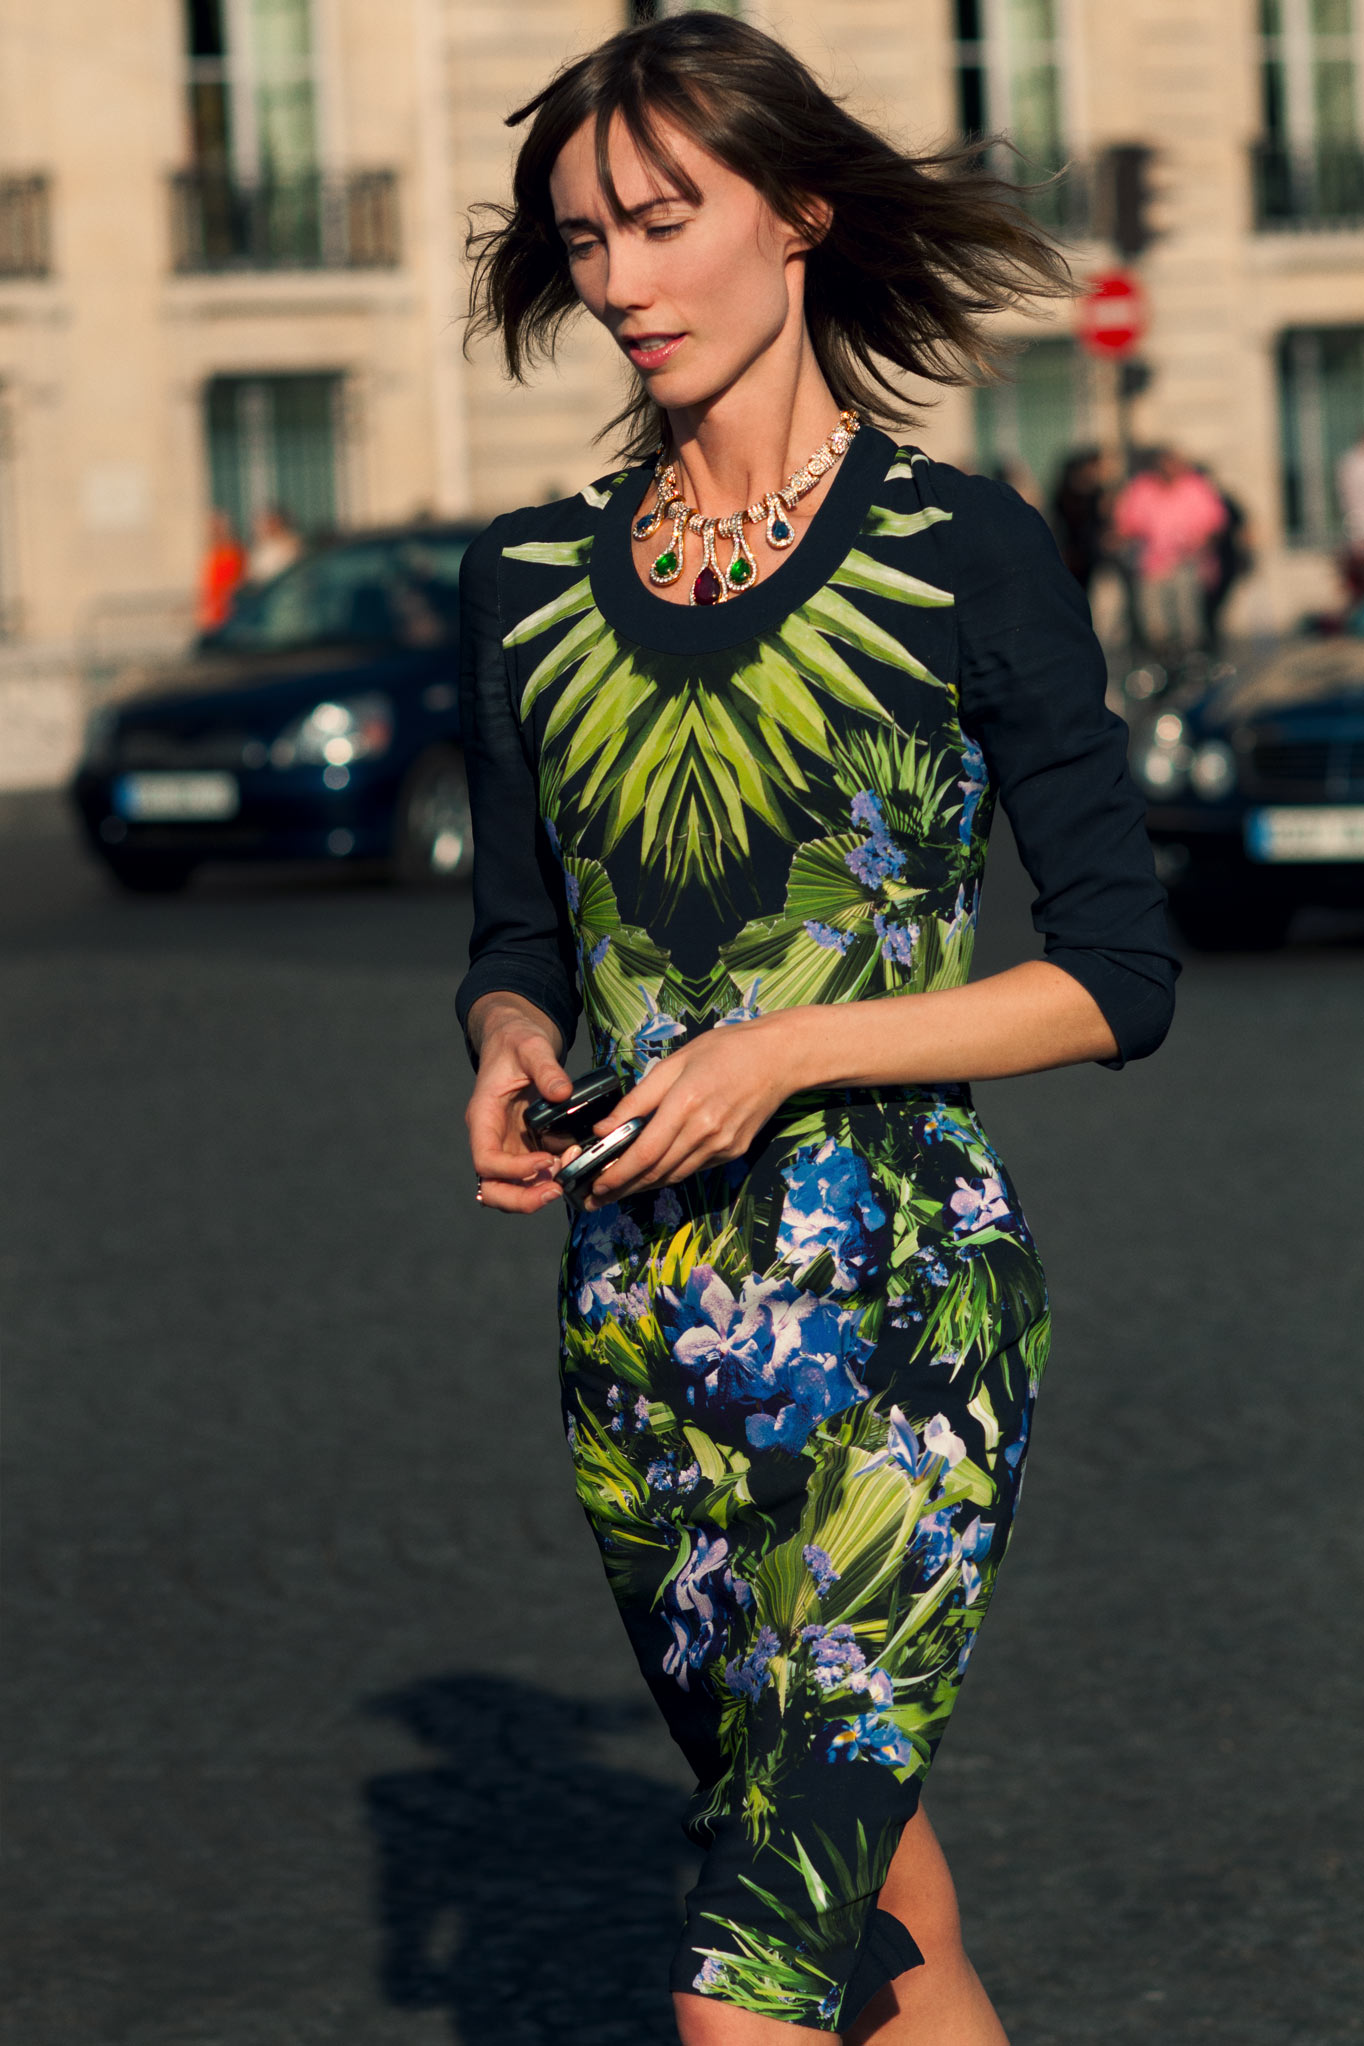 Anya Ziourova at Paris Fashion Week Spring/Summer 2012